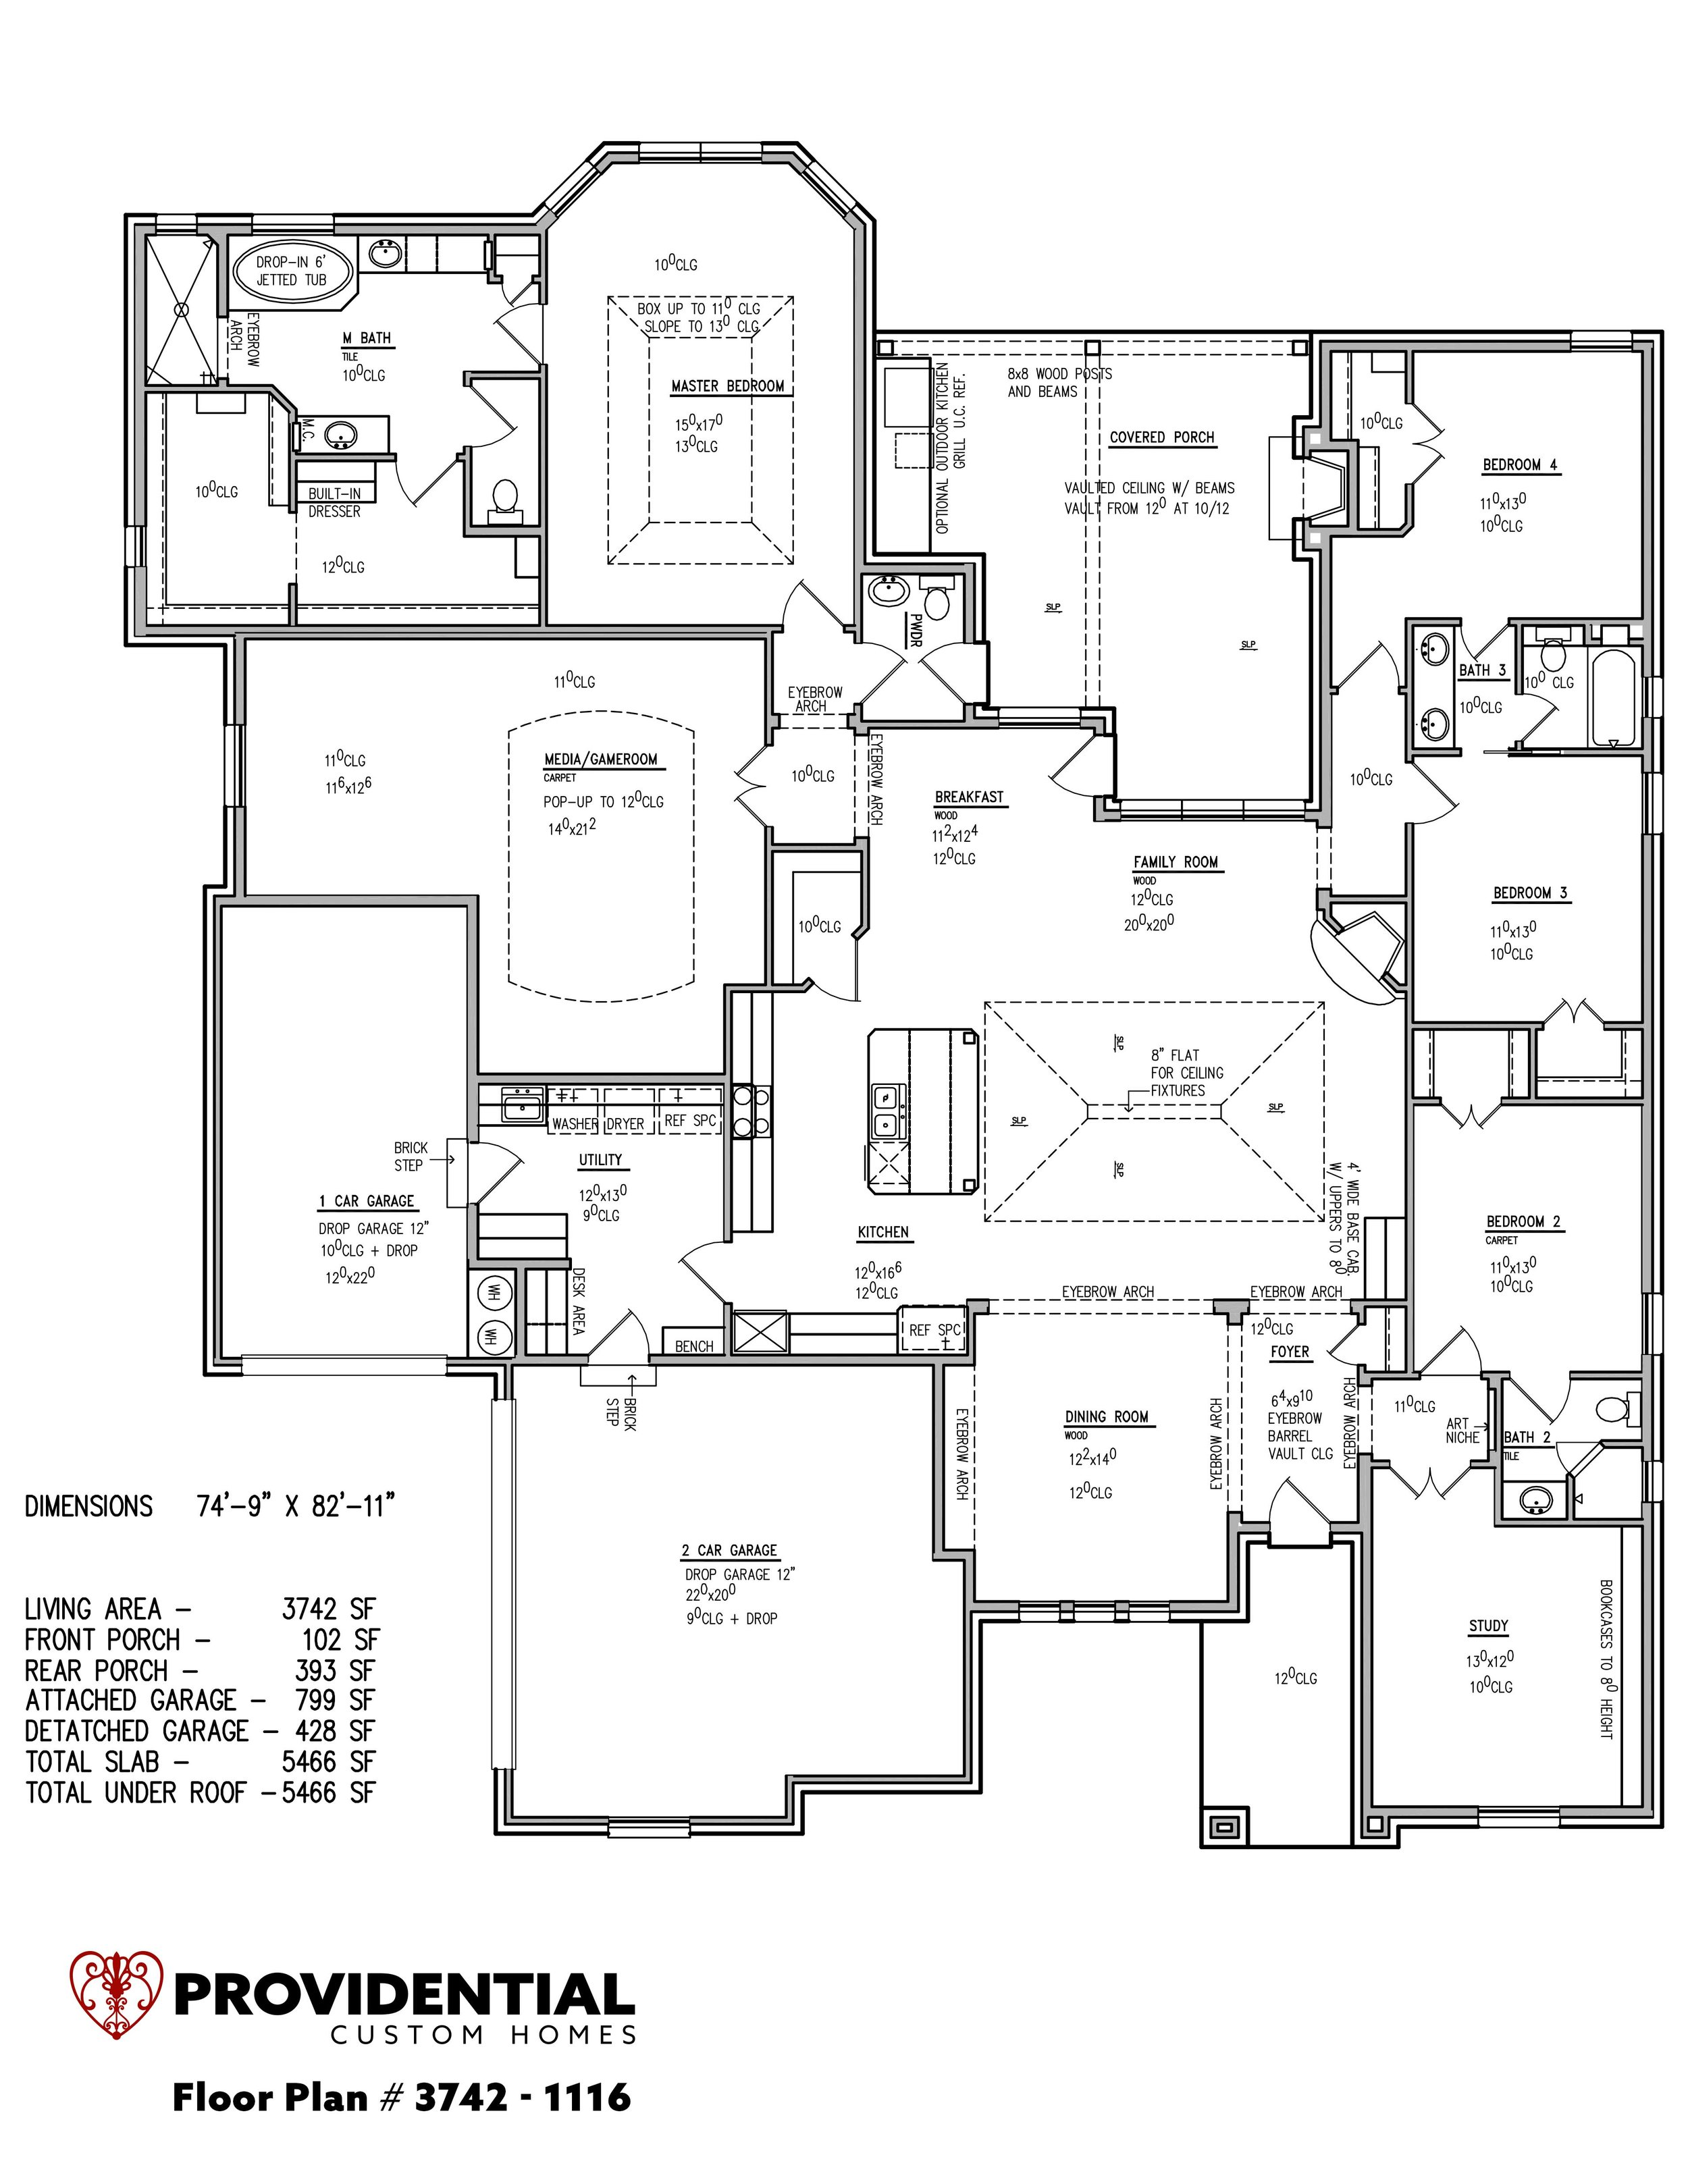 The FLOOR PLAN #3742 - 1116.jpg